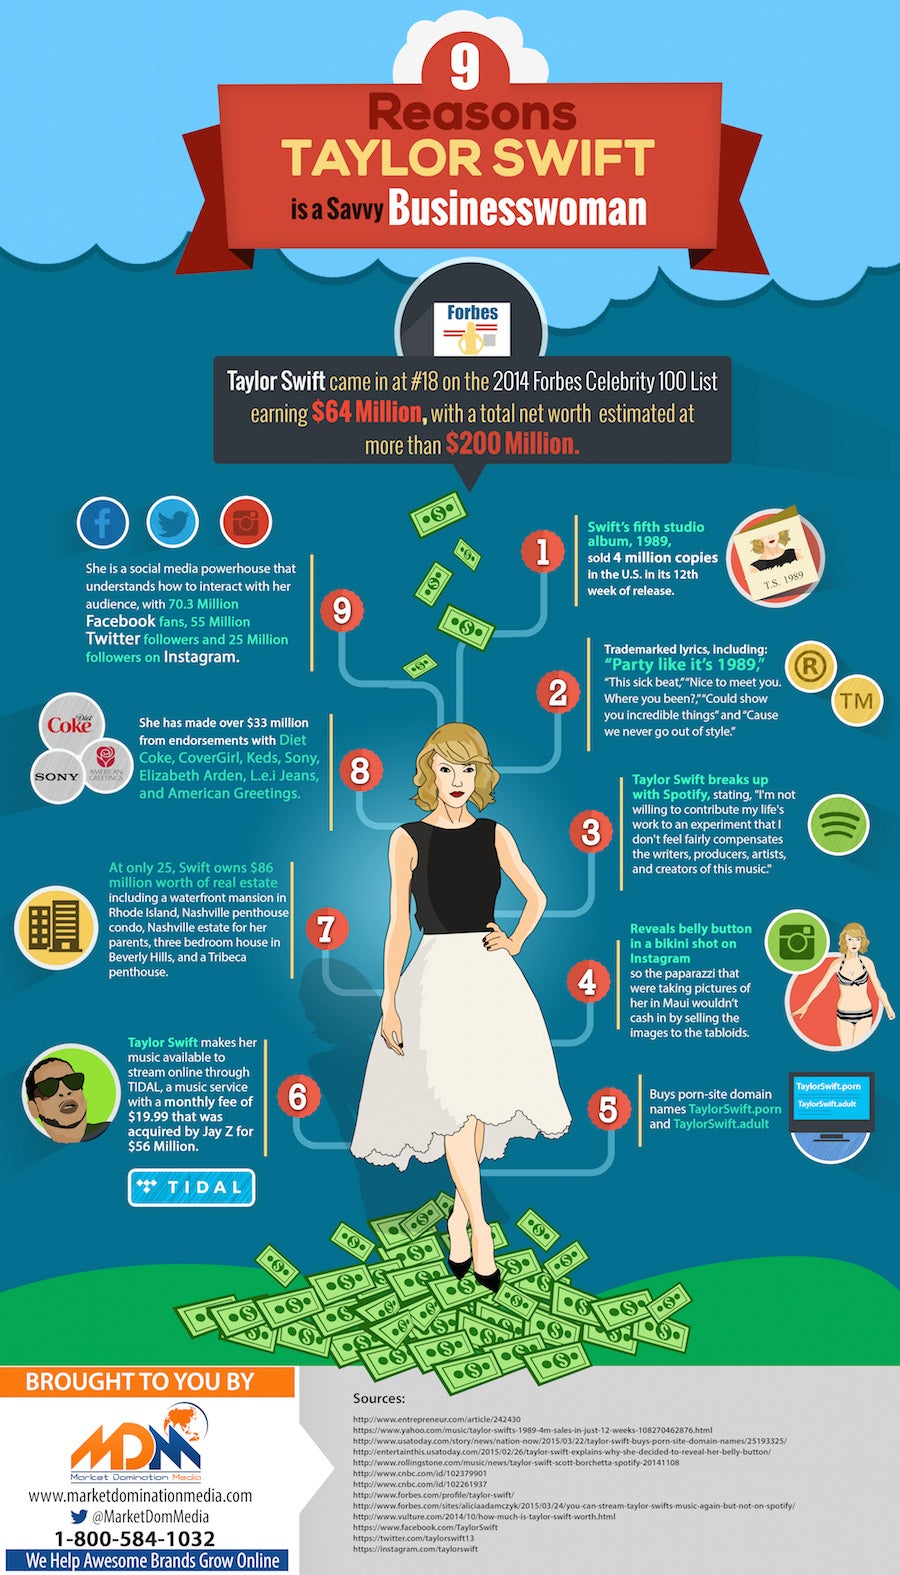 9 Reasons Taylor Swift Is a Savvy Business Leader (Infographic)